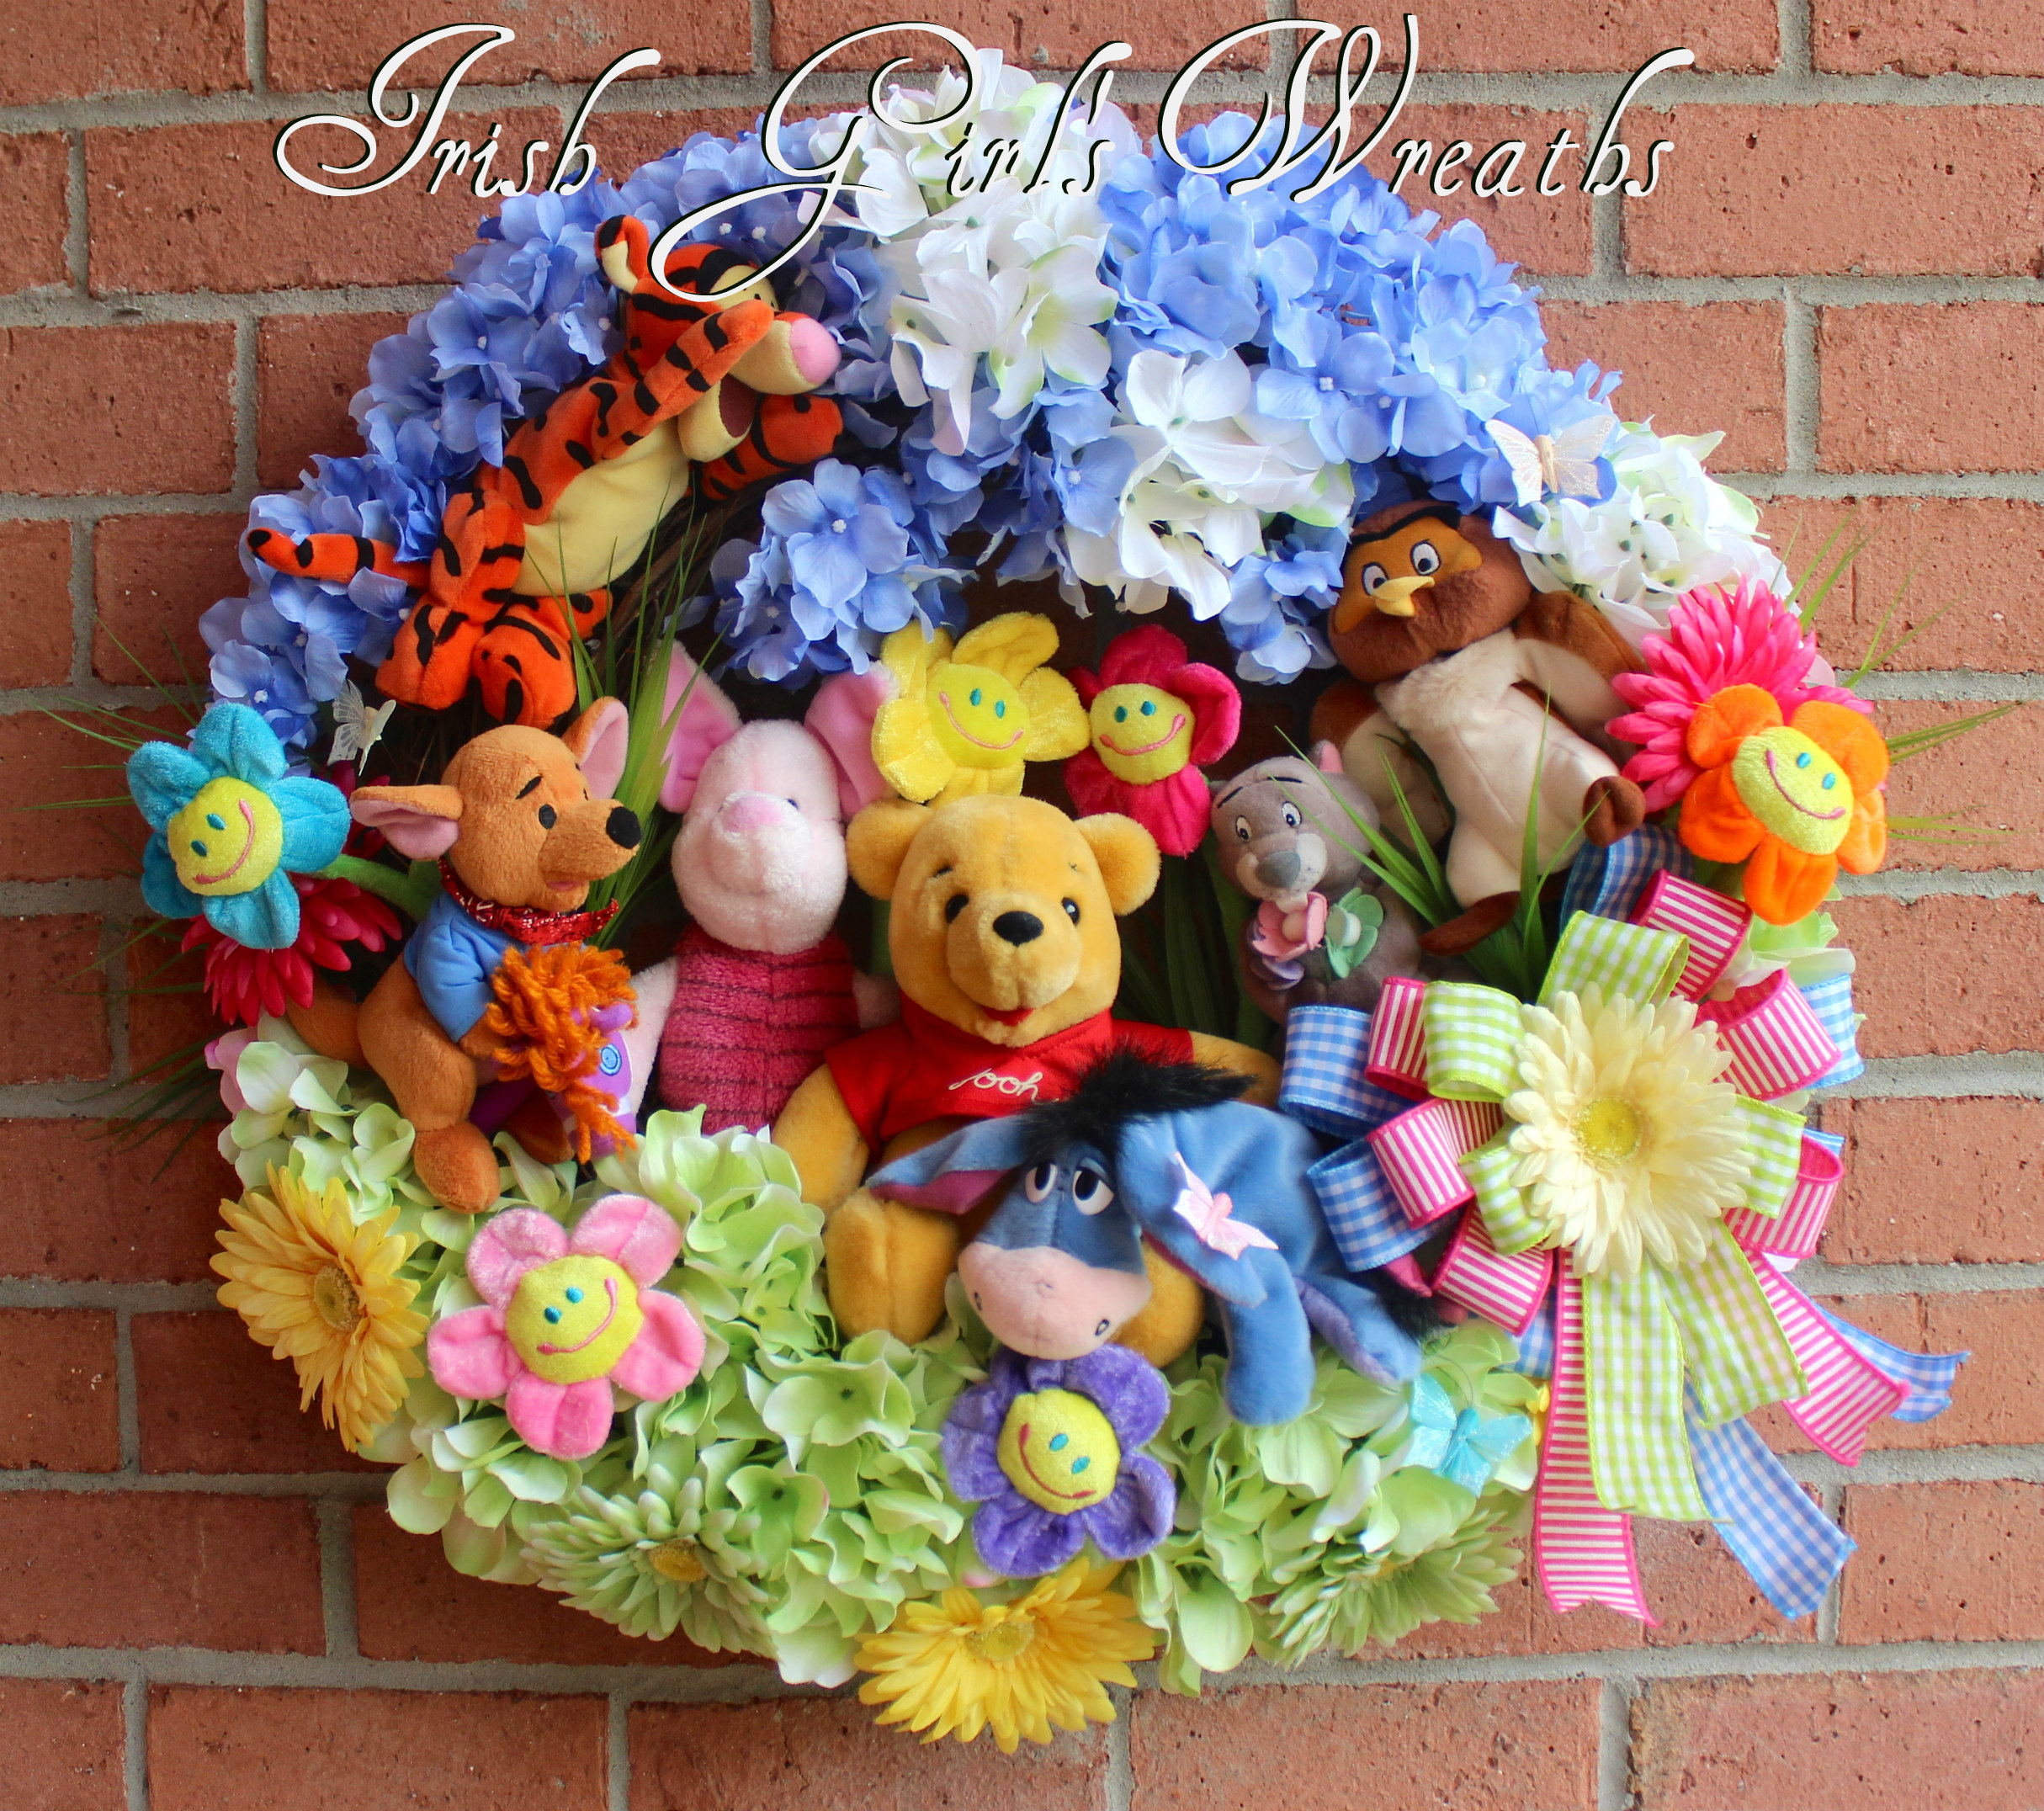 Winnie the Pooh and Friends Wreath – Custom Order for fabulous repeat customer, Dolores